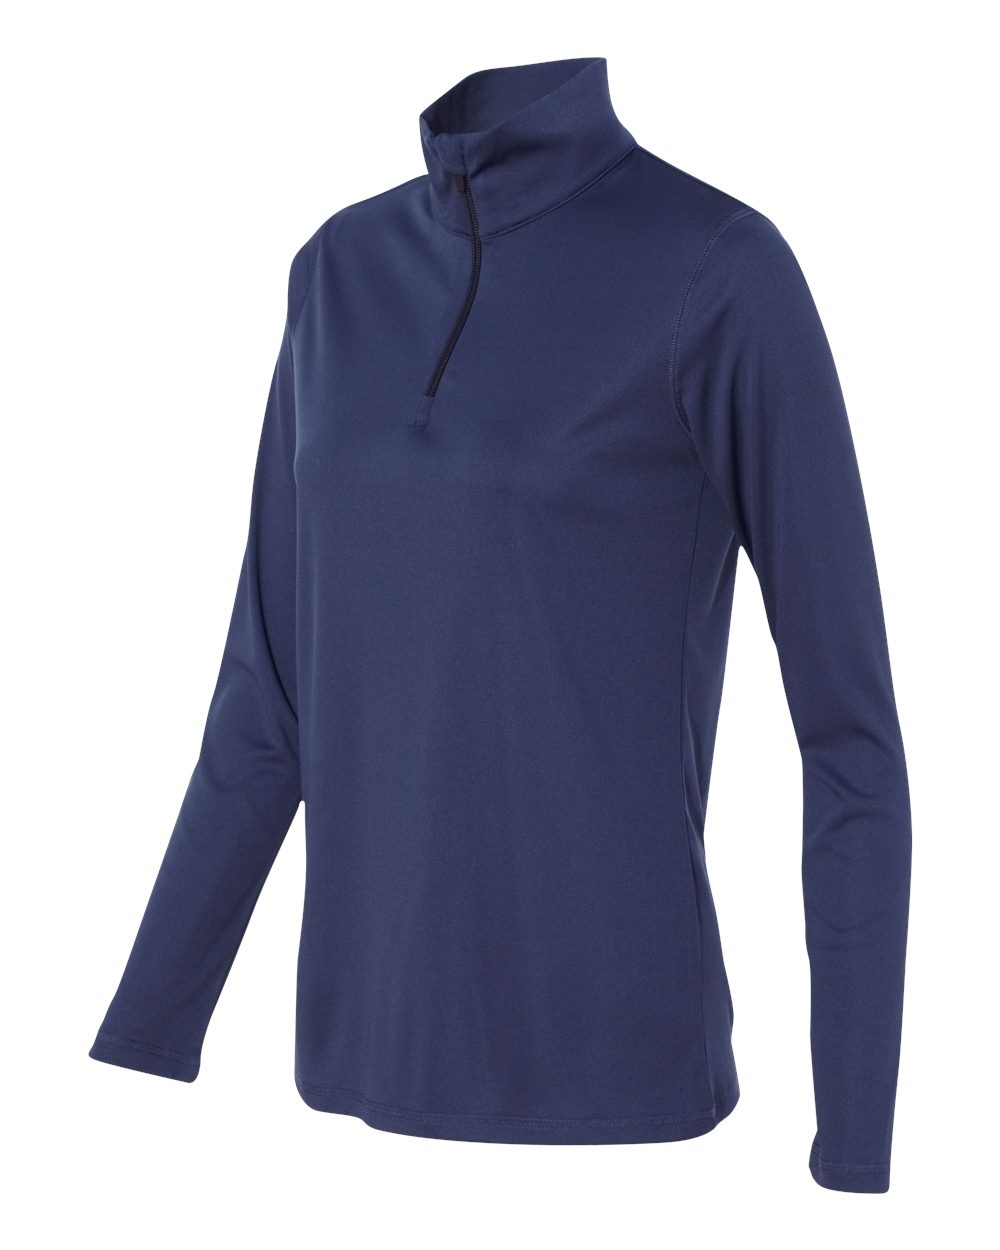 alo - Ladies' Quarter Zip Lightweight Pullover